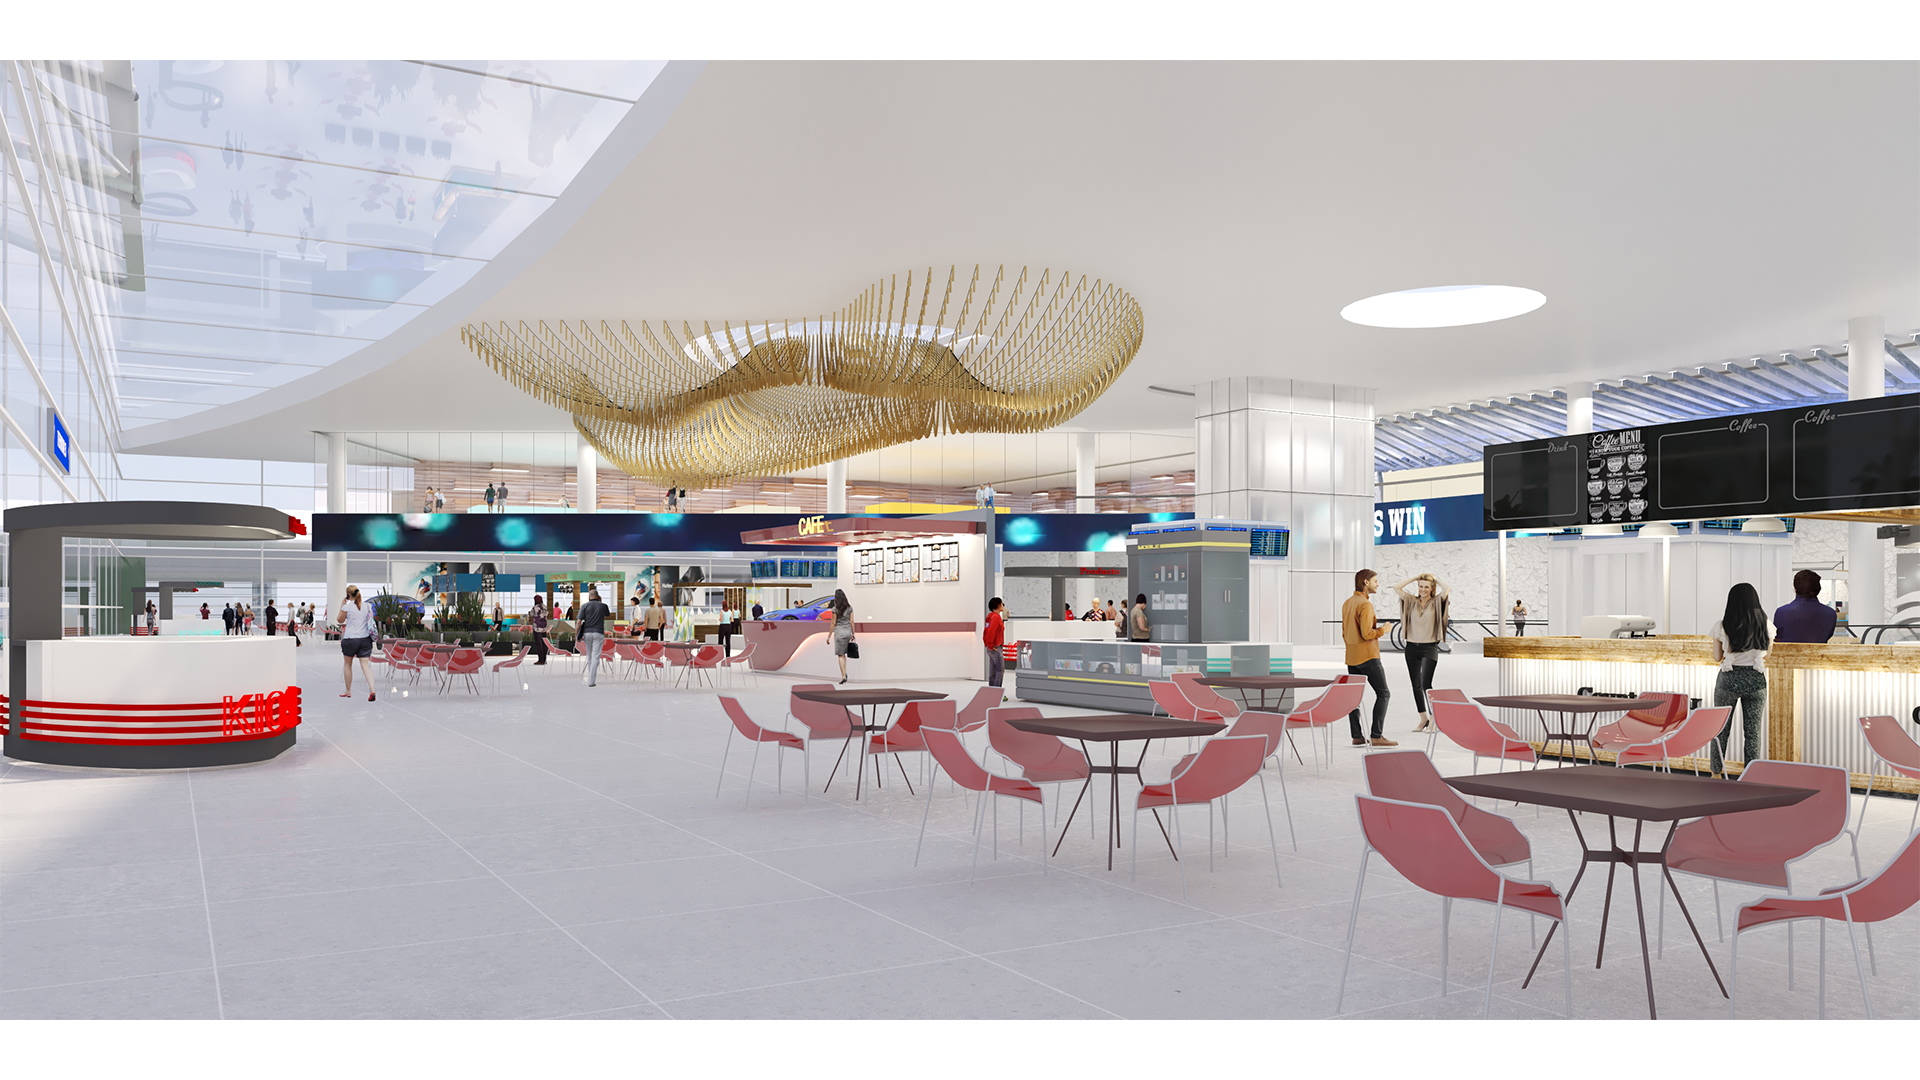 IMD_Rendering_Aviation_FLL_12_LookingBackLobby.jpg